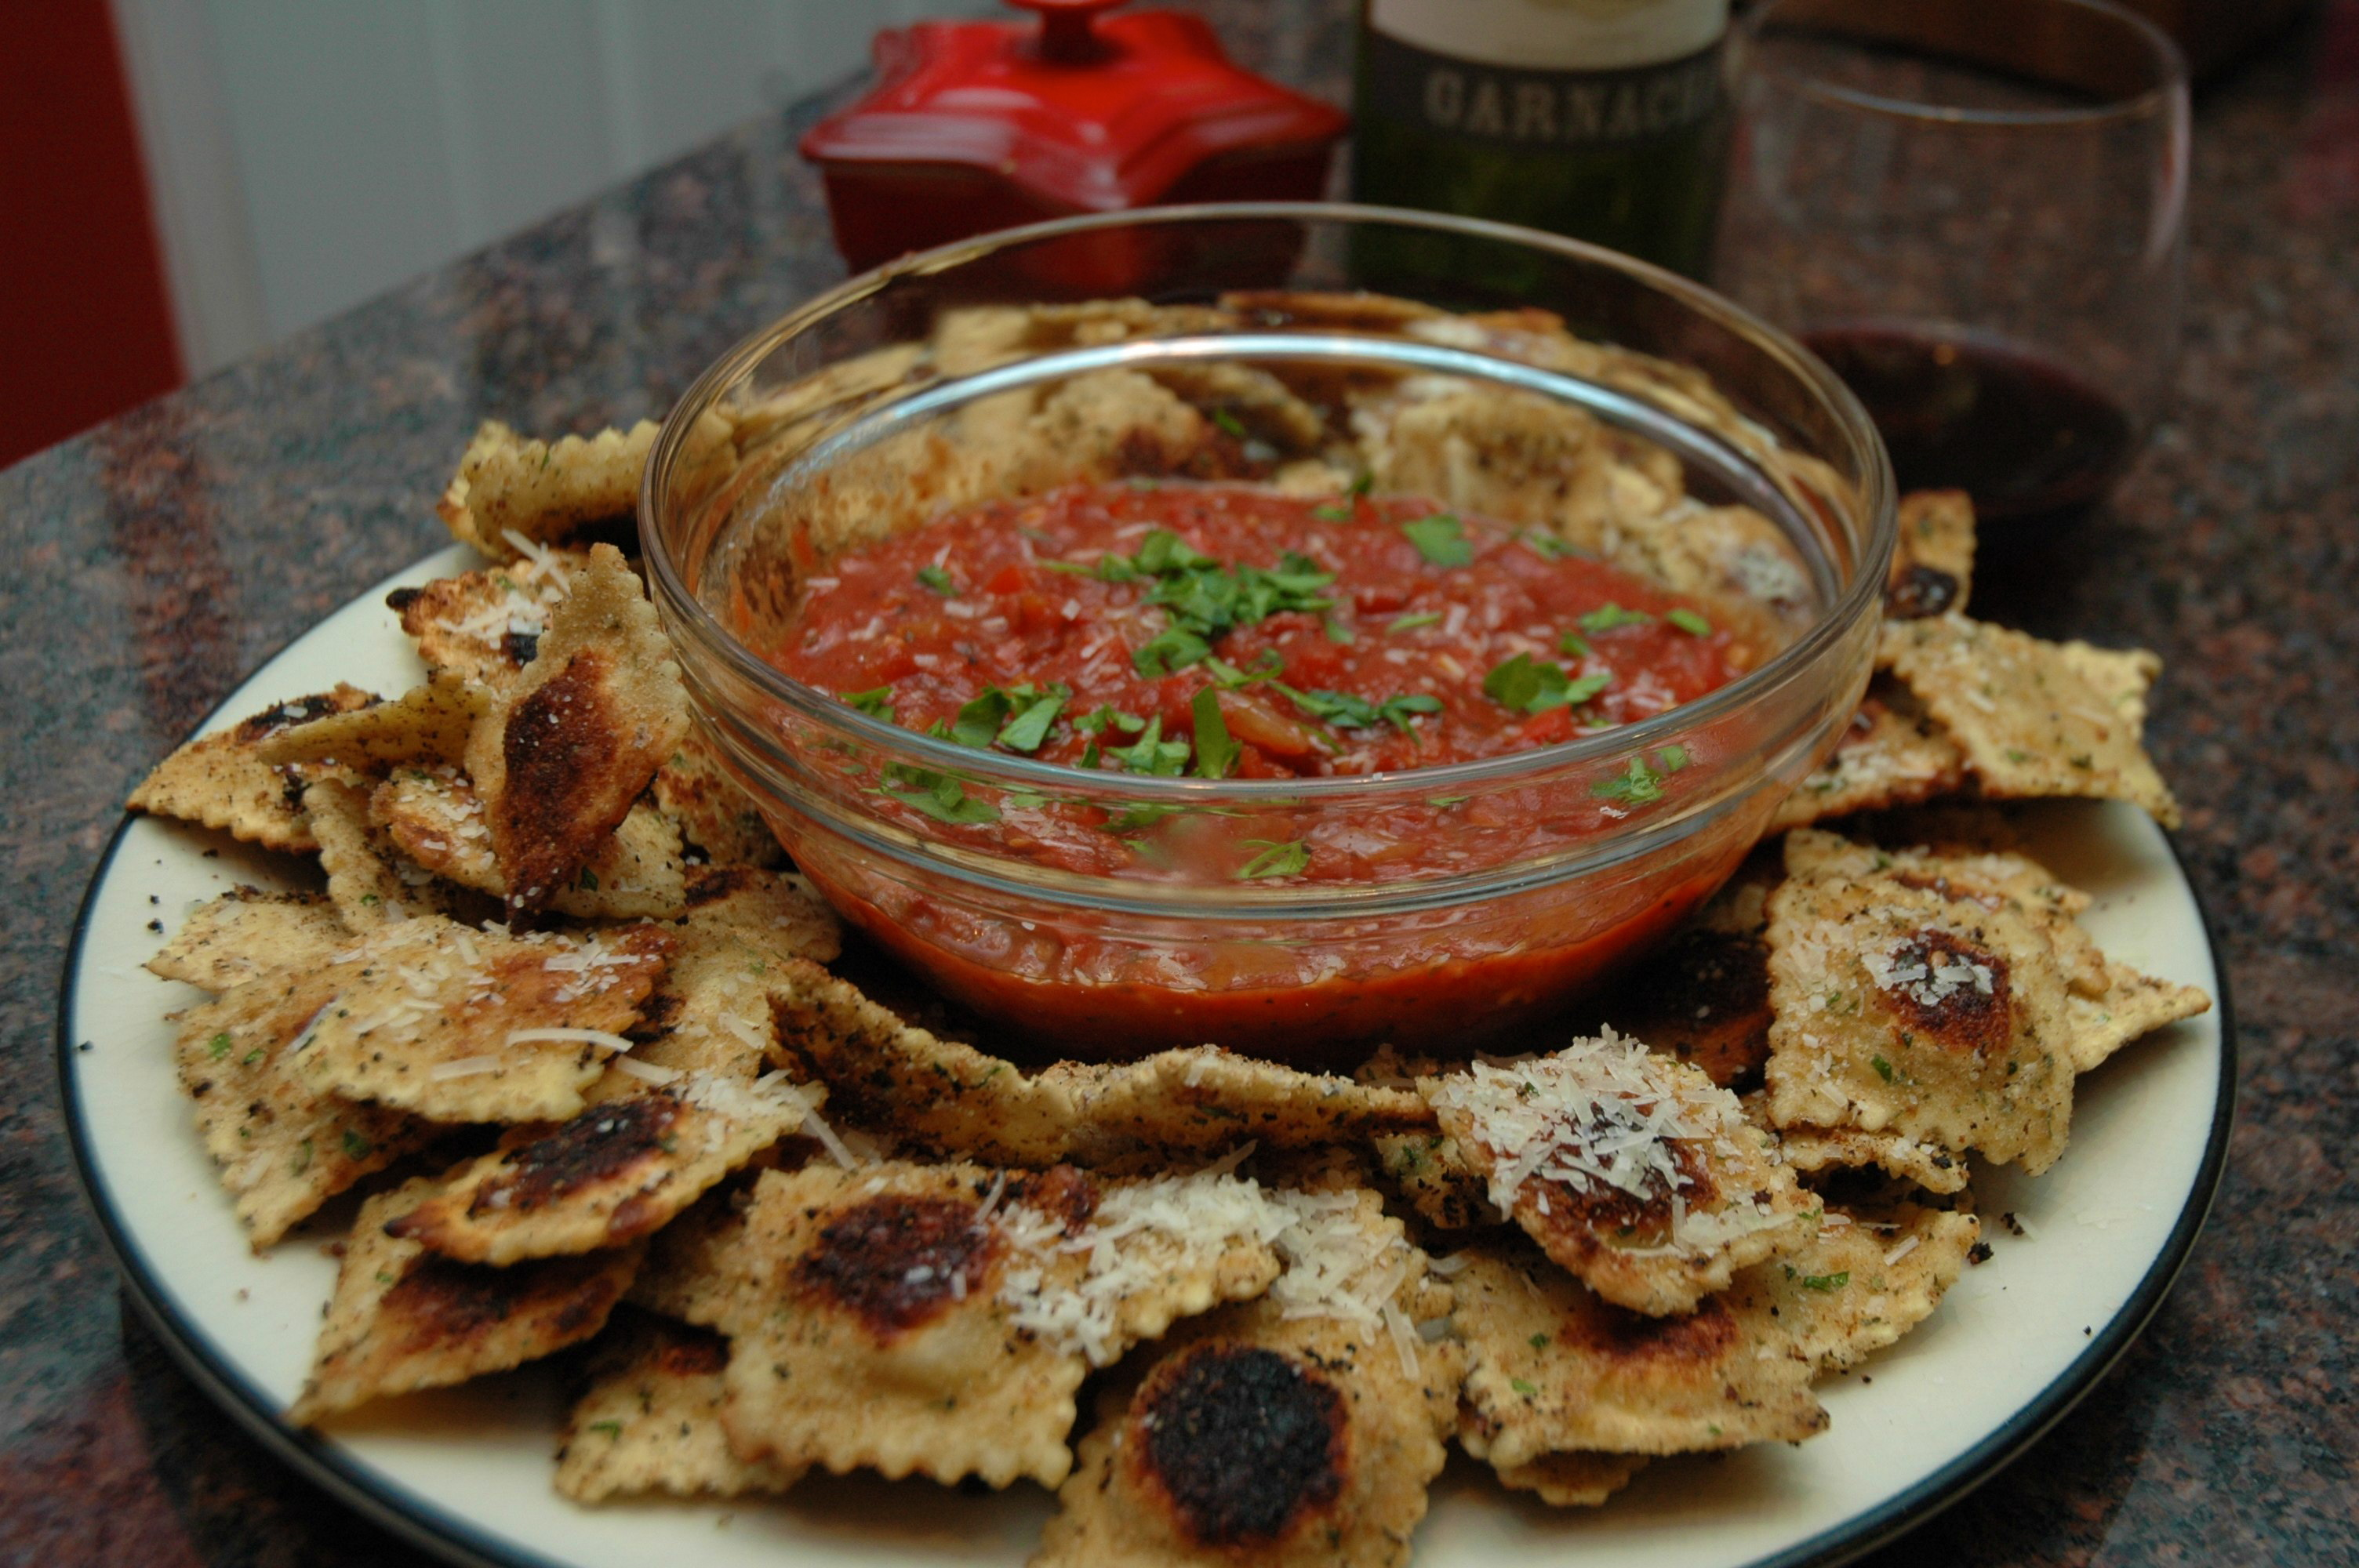 Snackin' with Sarah Sellers: Toasted Ravioli with Marinara ...